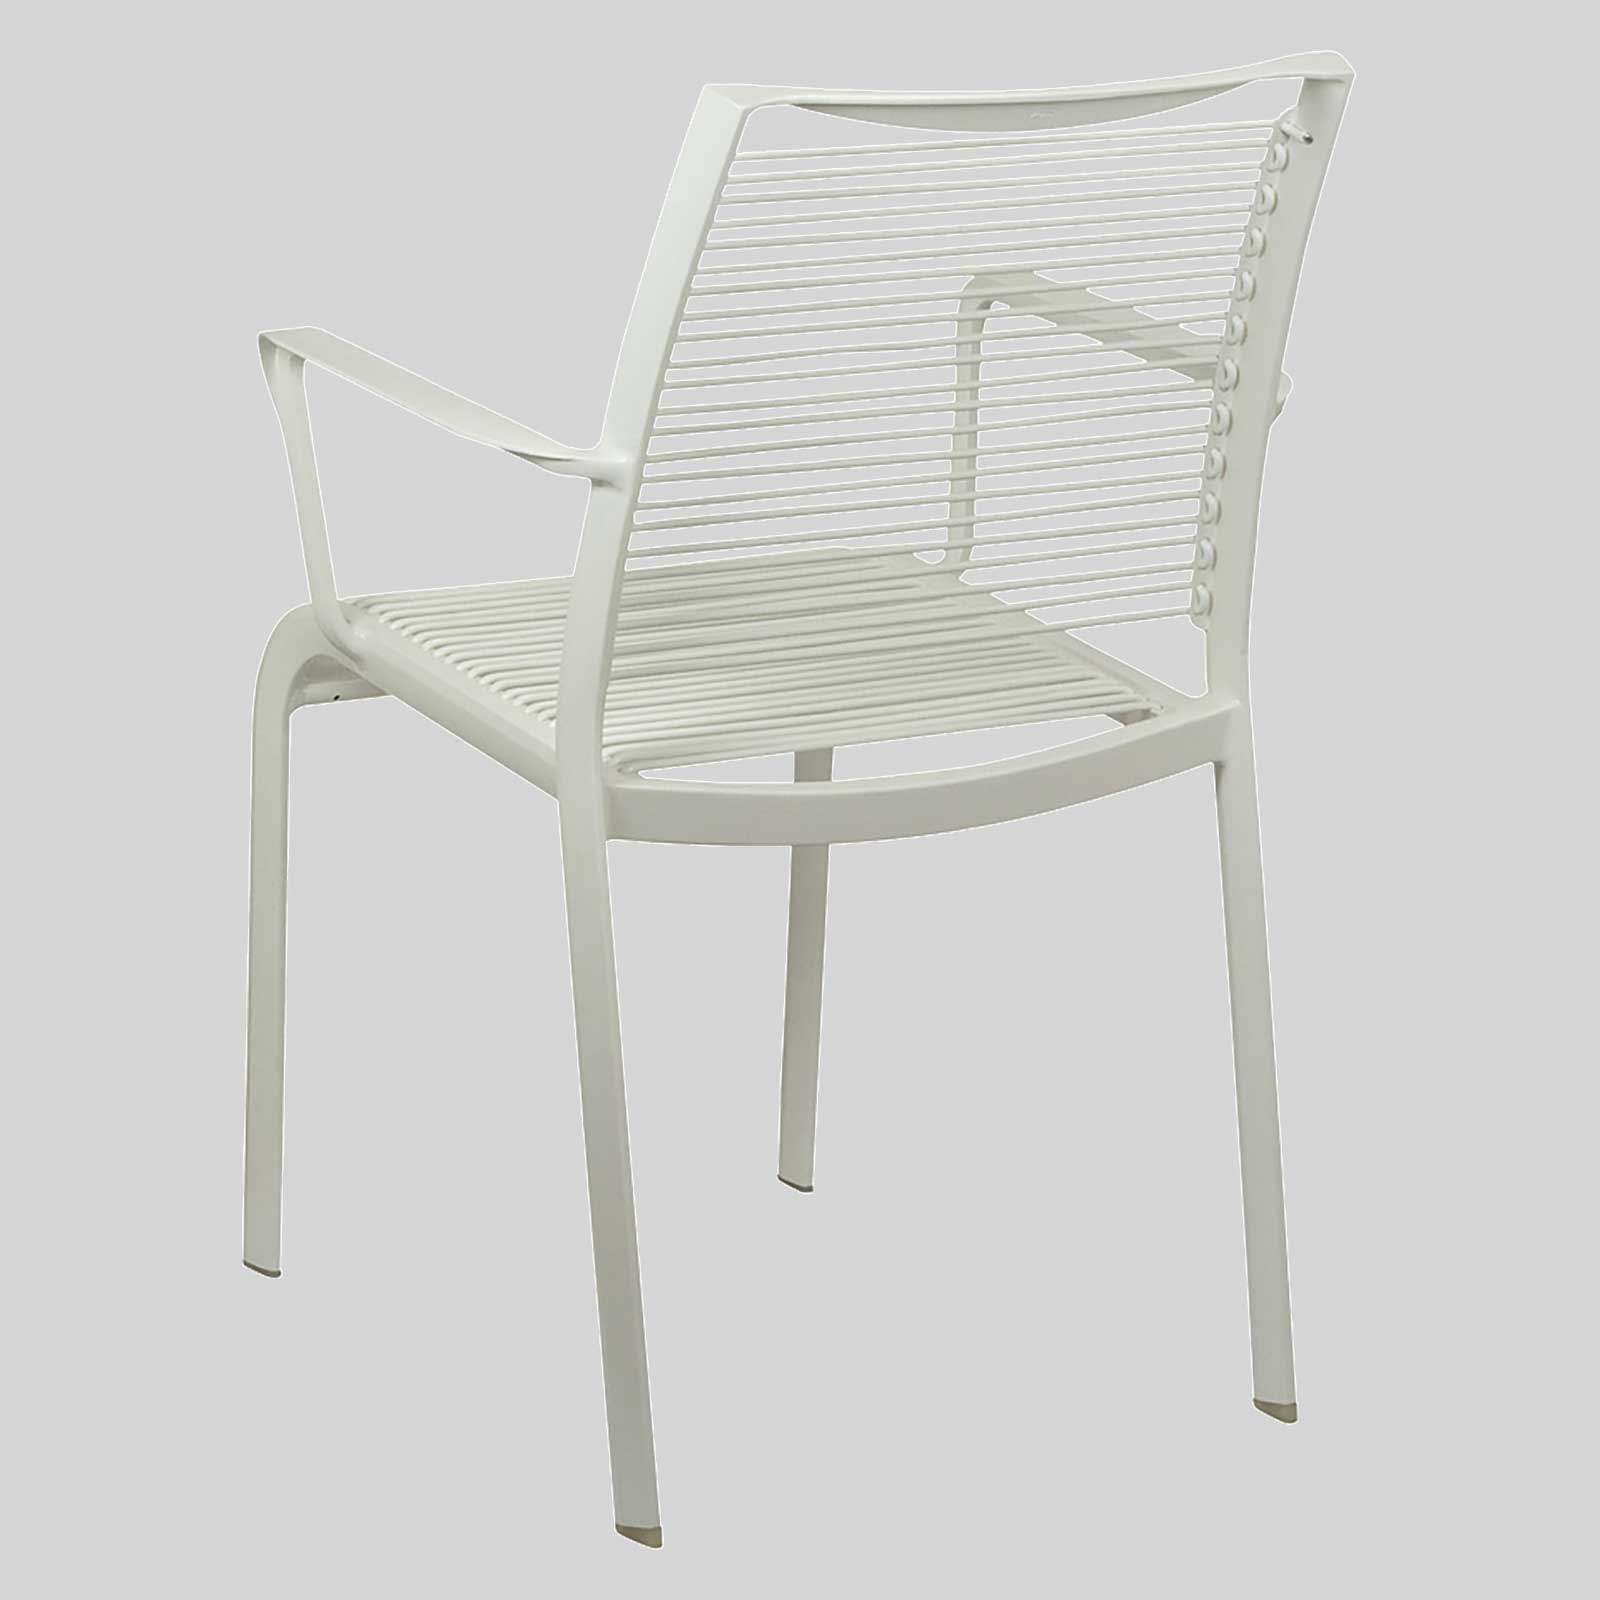 Outdoor cafe chairs - Waverly Outdoor Cafe Chairs With Arms White